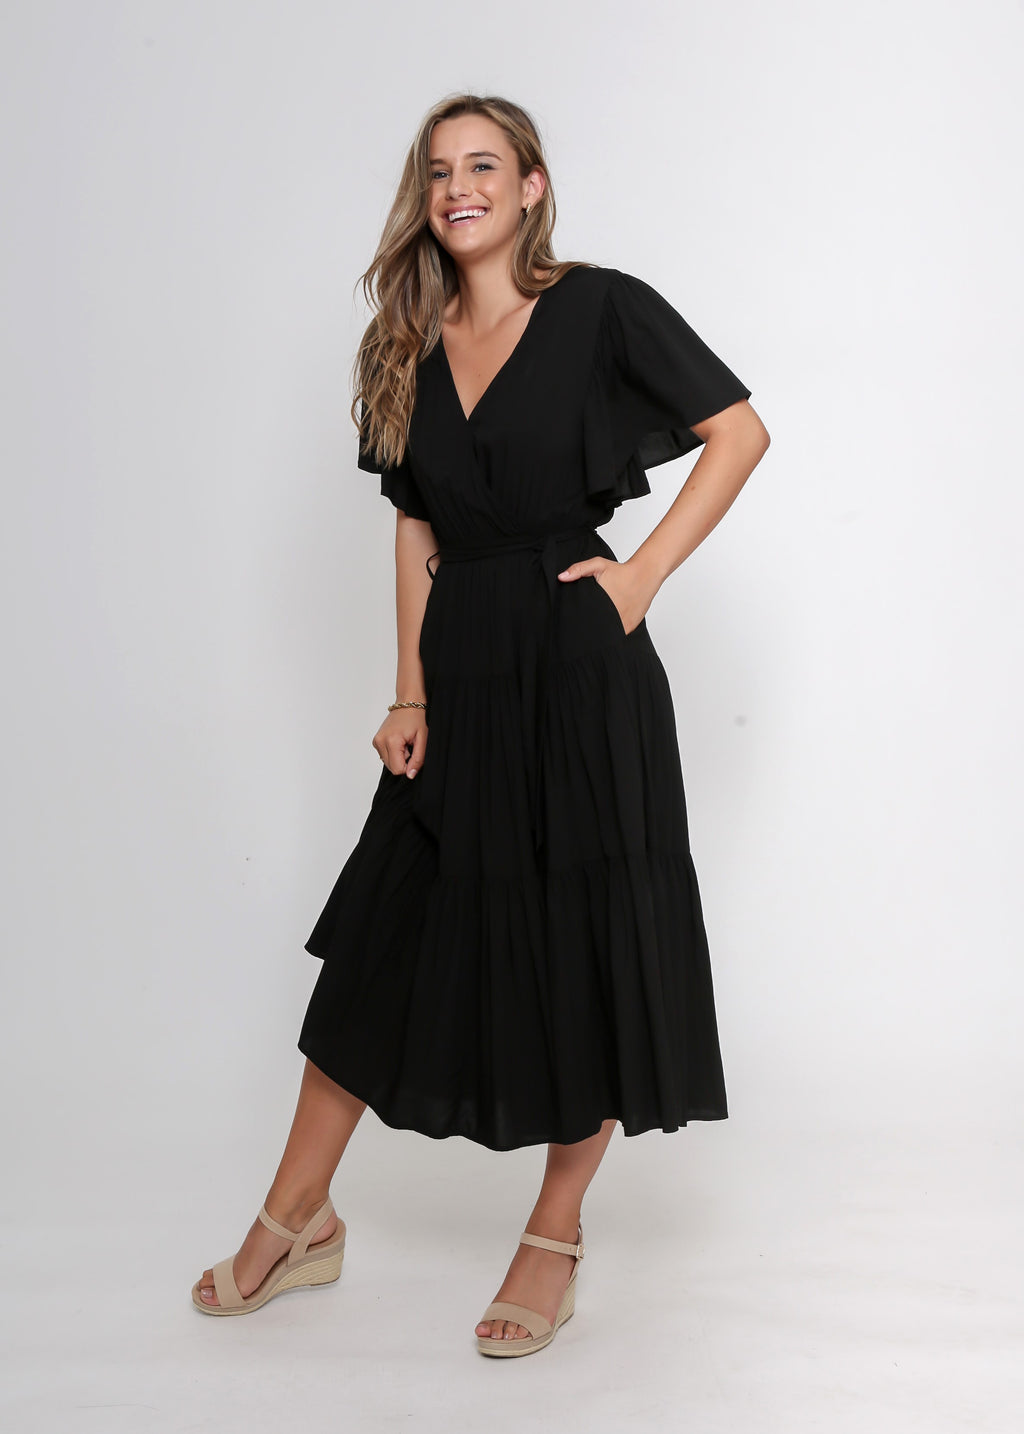 DAYNA DRESS - BLACK - LAST STOCK